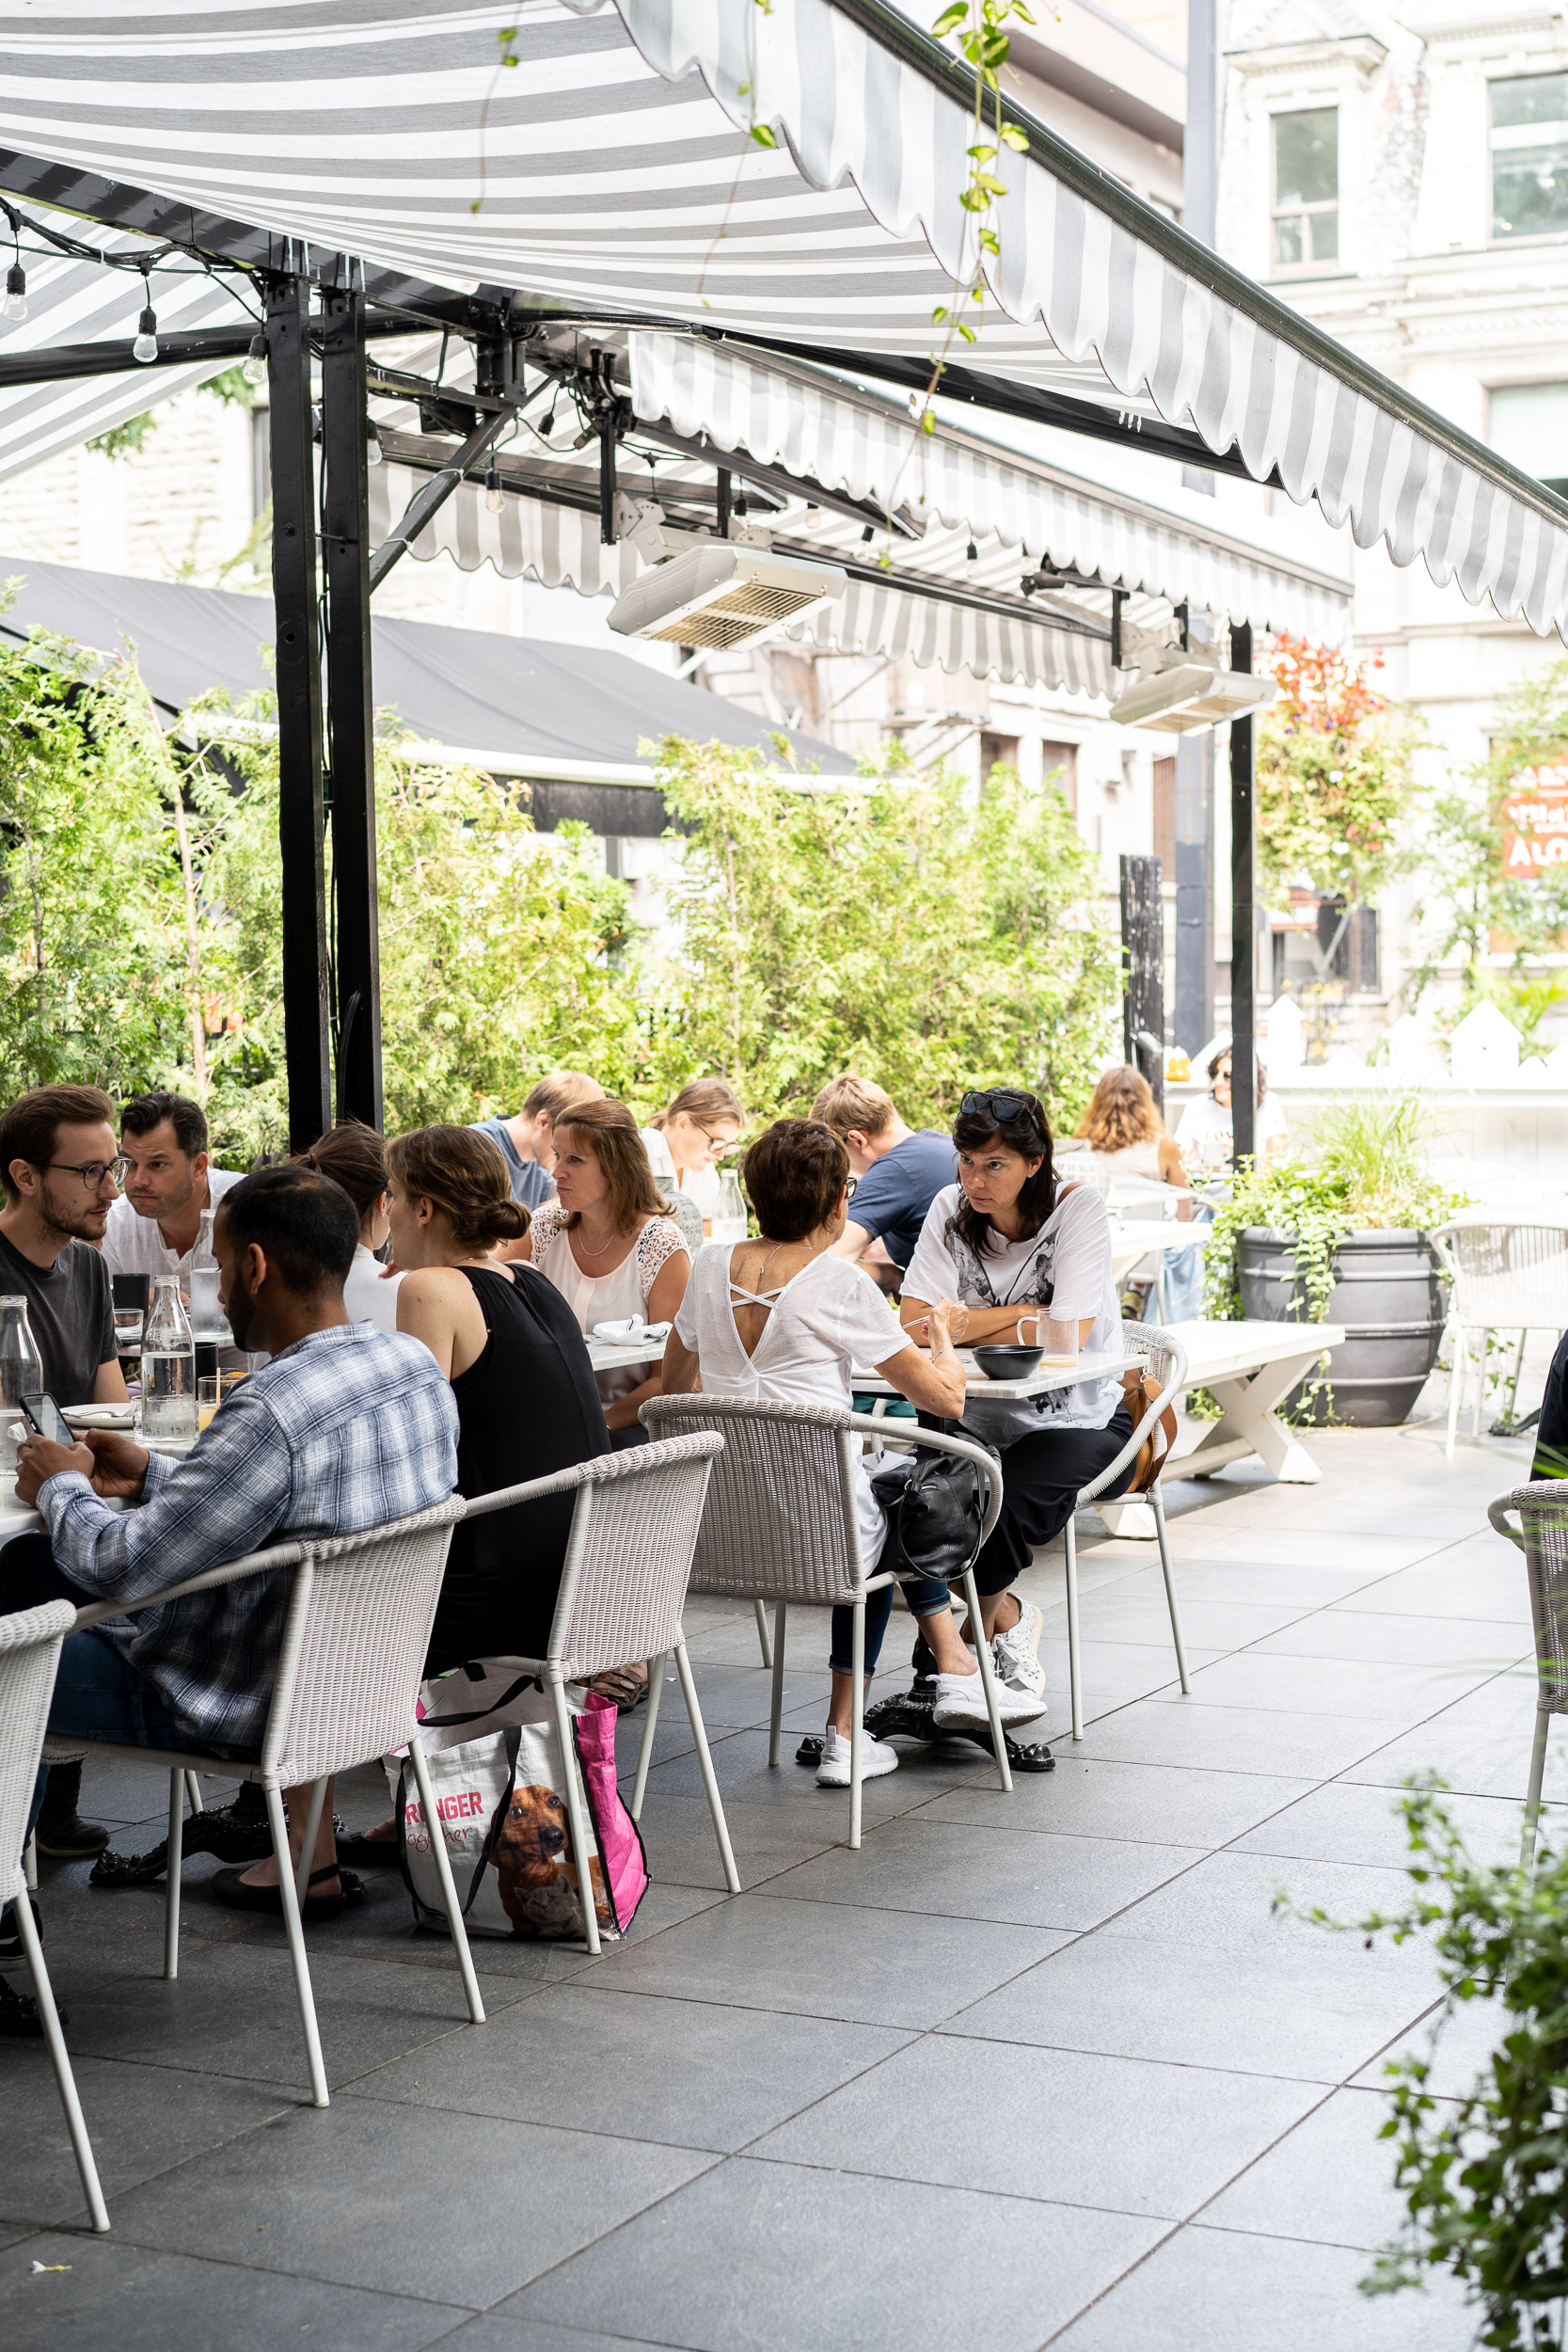 On a warm summer day it's no surprise the patio is busy.